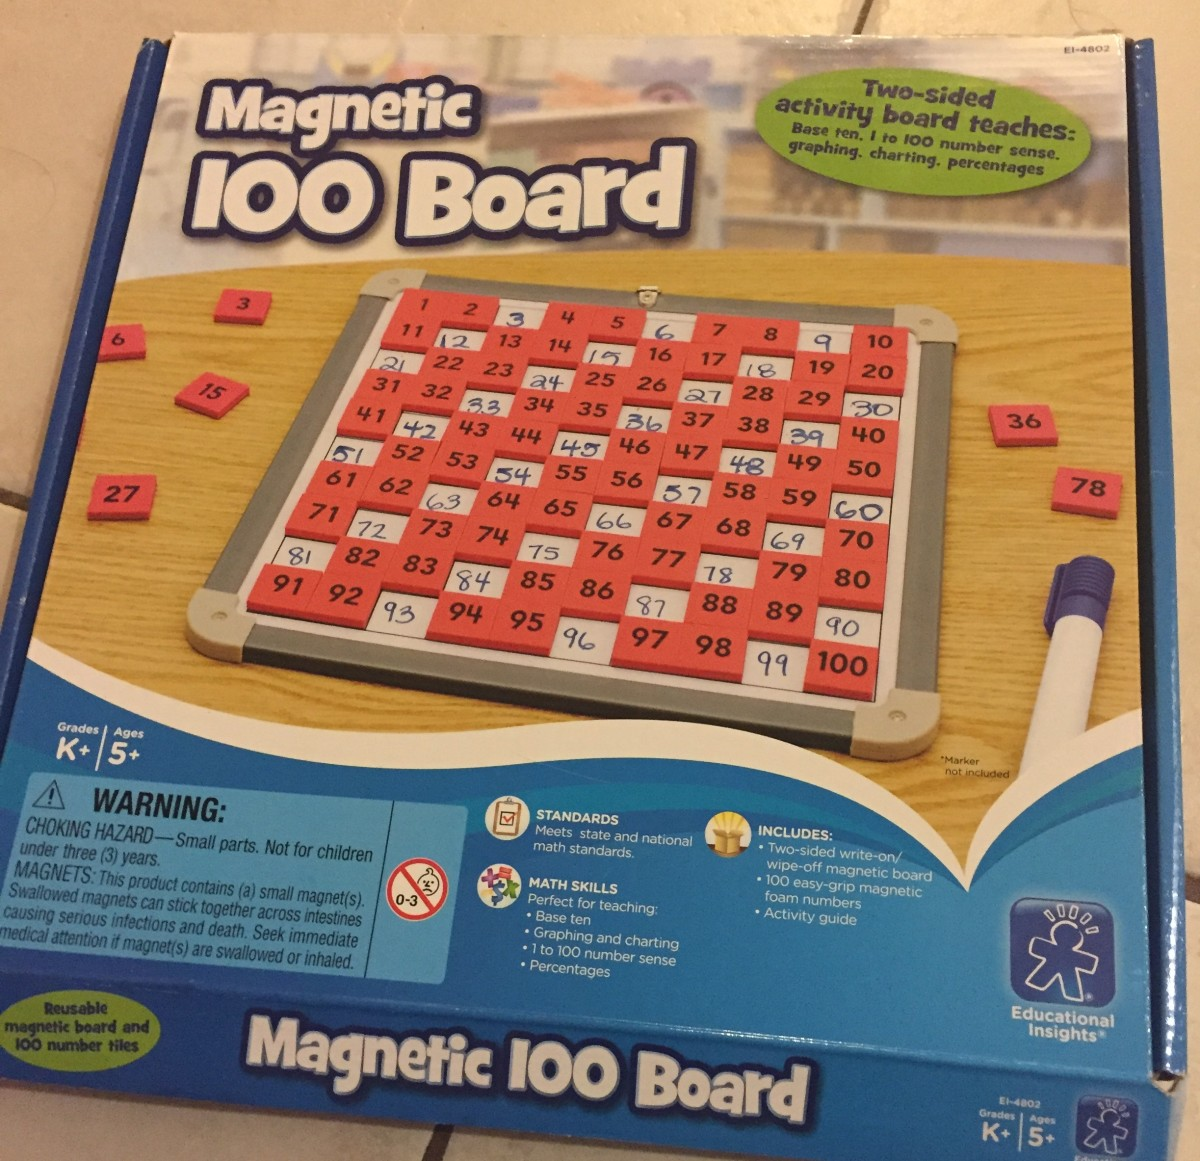 The Educational Insights Magnetic 100 Board